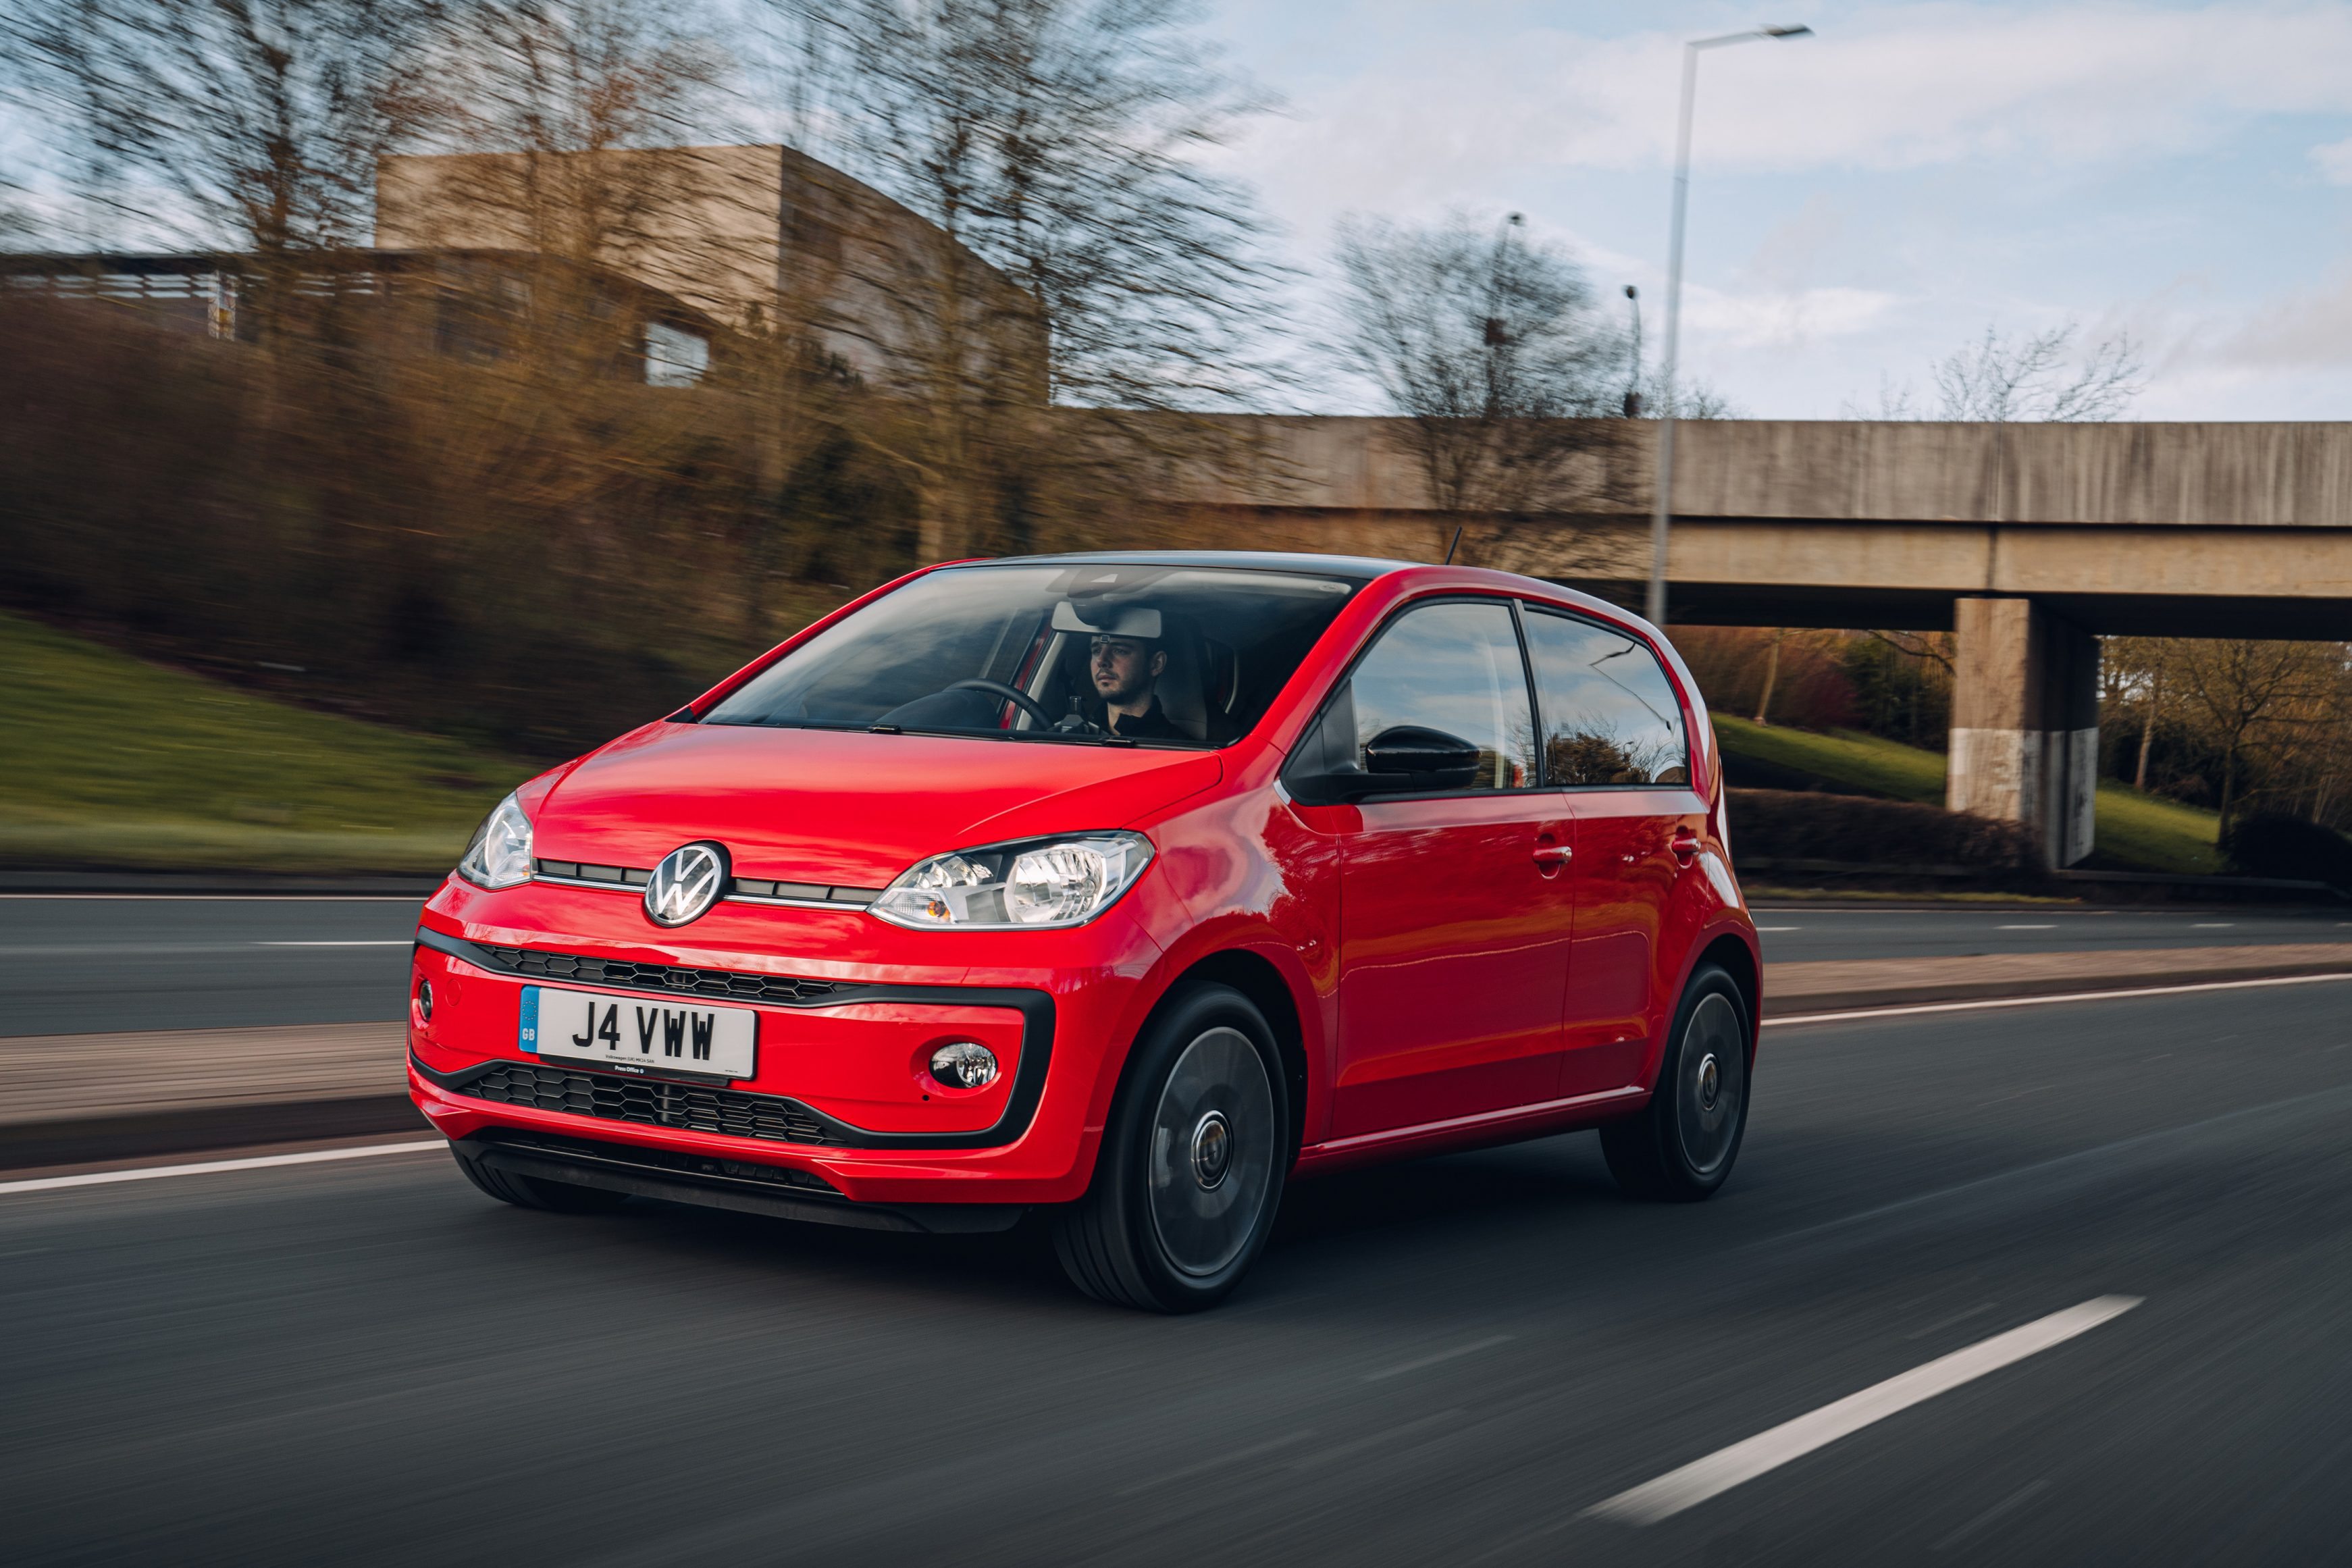 The Volkswagen Up is a premium city car that takes VW's robust, reliable build and applies it to a diddy model